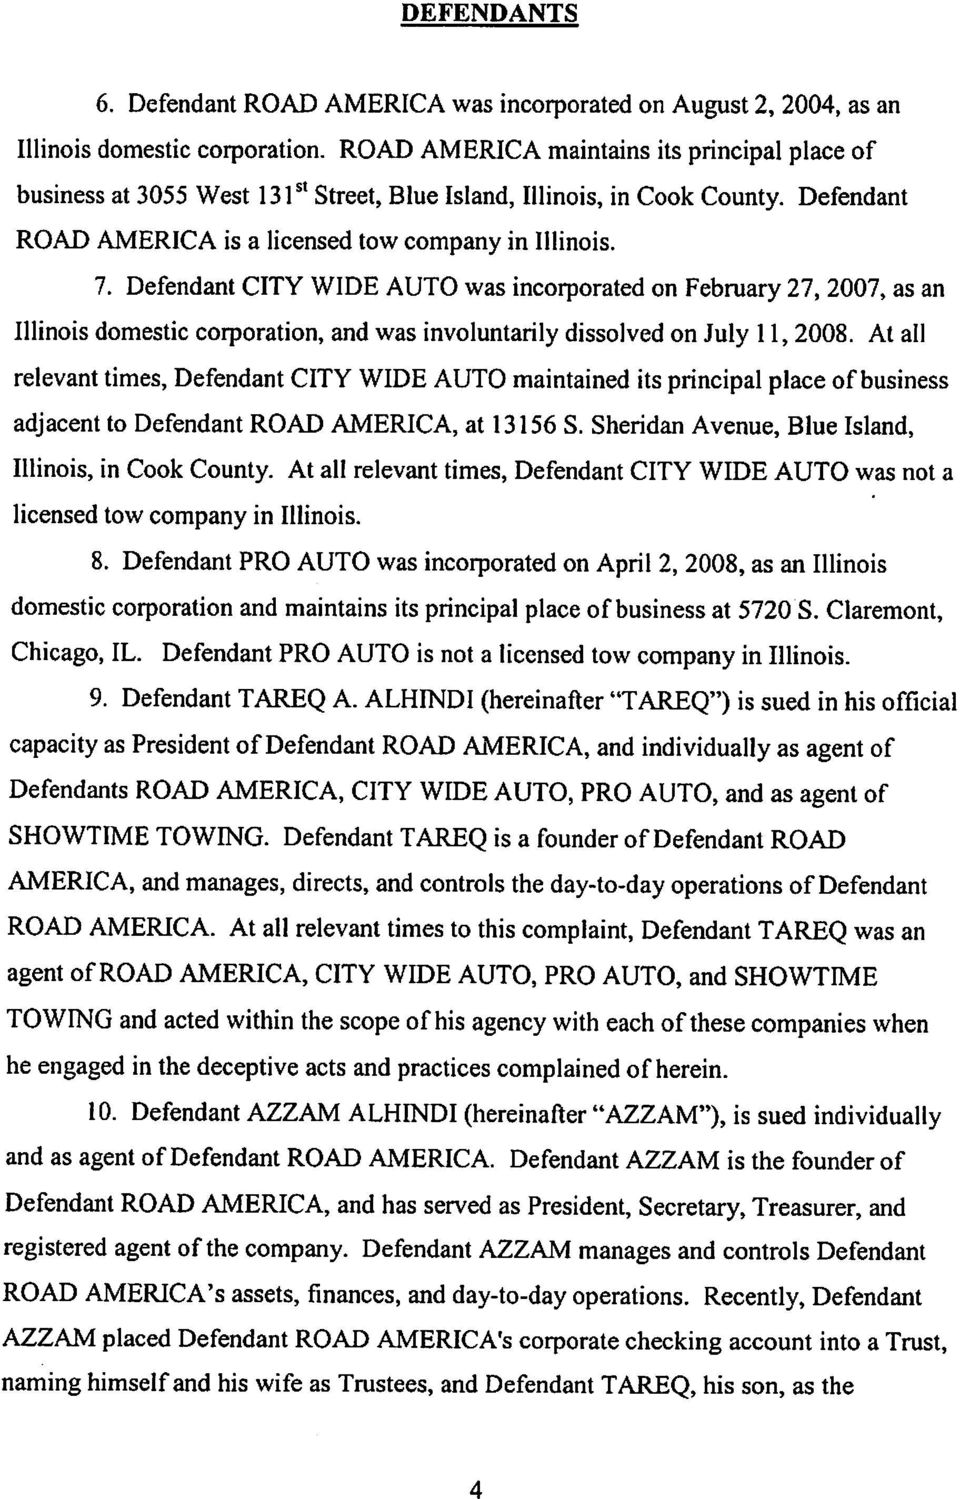 Defendant CITY WIDE AUTO was incorporated on February 27, 2007, as an Illinois domestic corporation, and was involuntarily dissolved on July 11,2008.